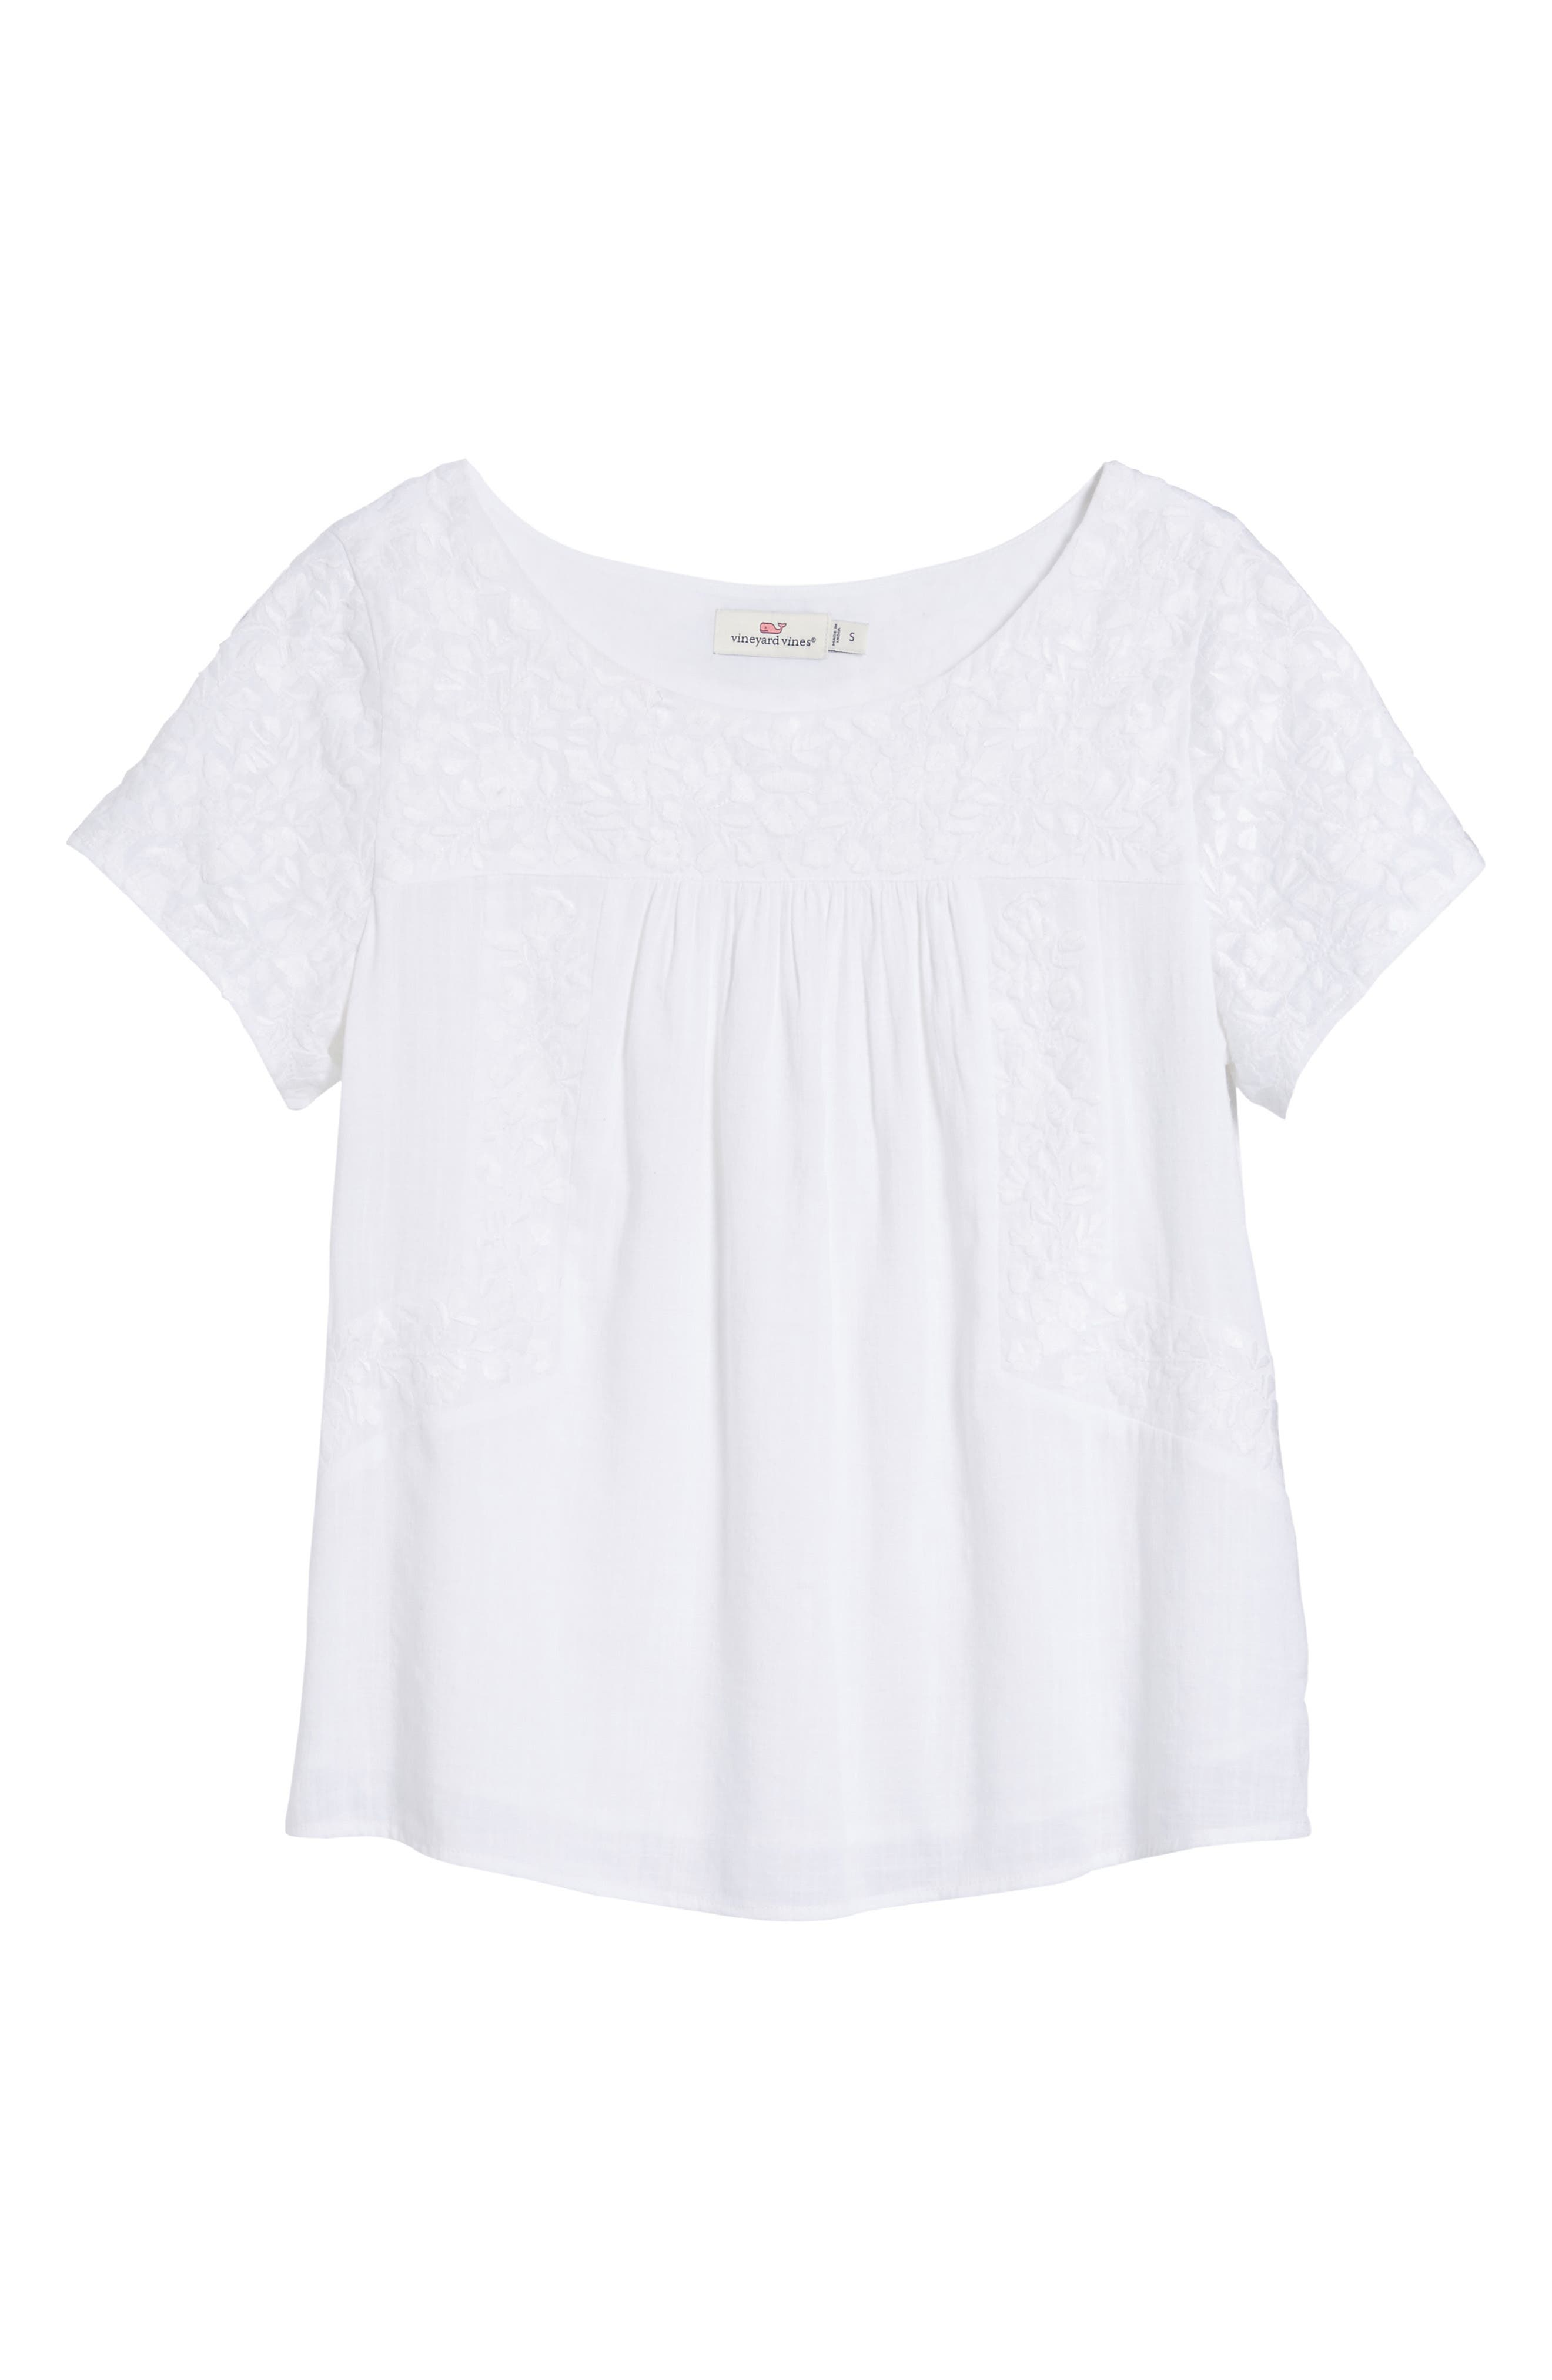 Monstera Linear Embroidered Top,                             Alternate thumbnail 6, color,                             White Cap